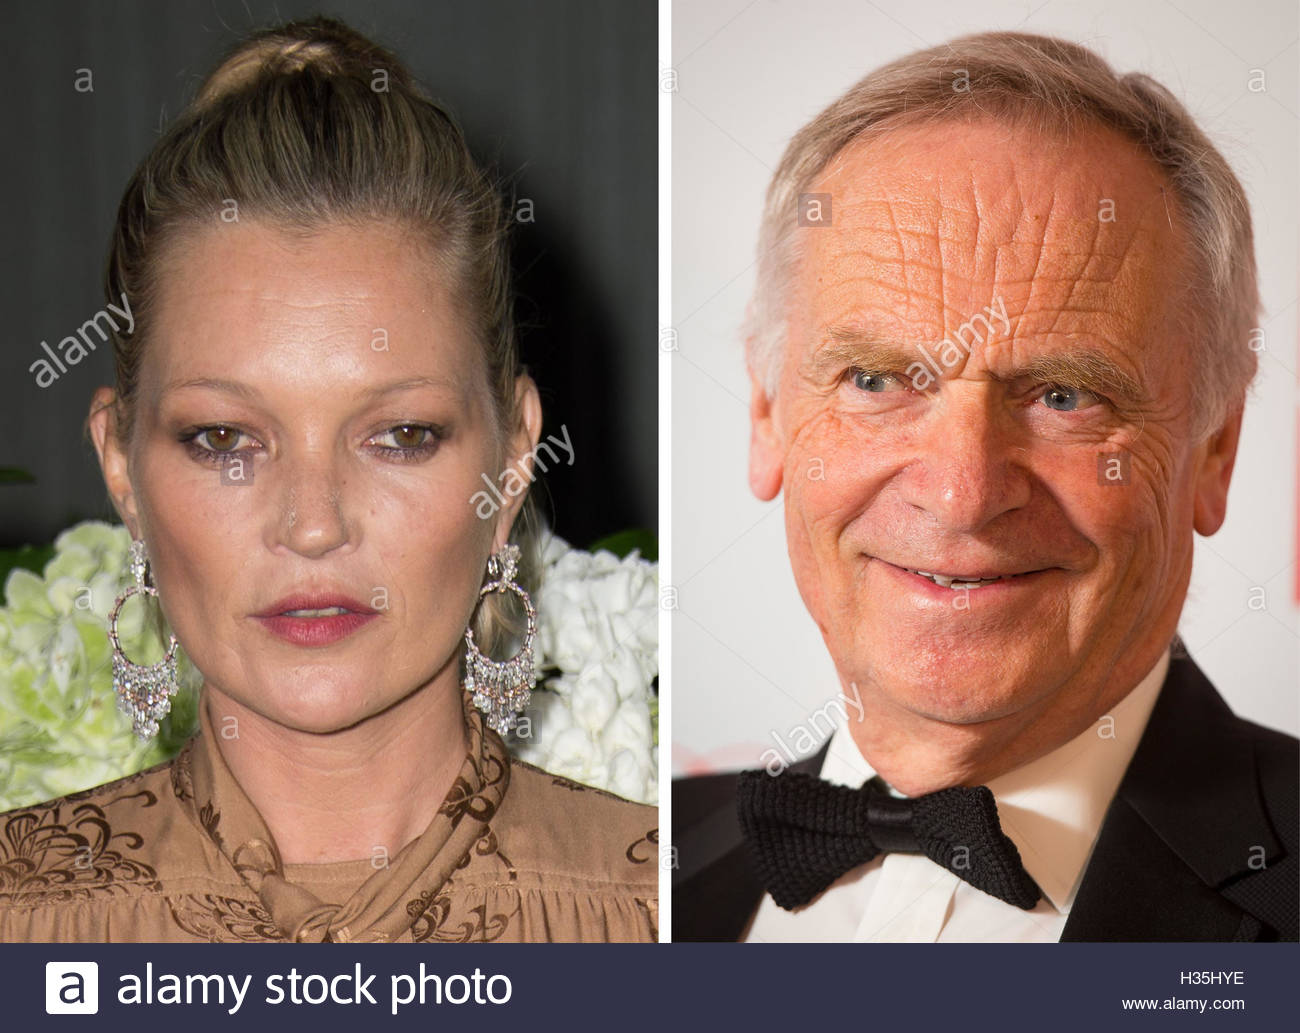 Undated file photos of Kate Moss and Jeffrey Archer who were listed as potential targets for extortion by a man - Stock Image